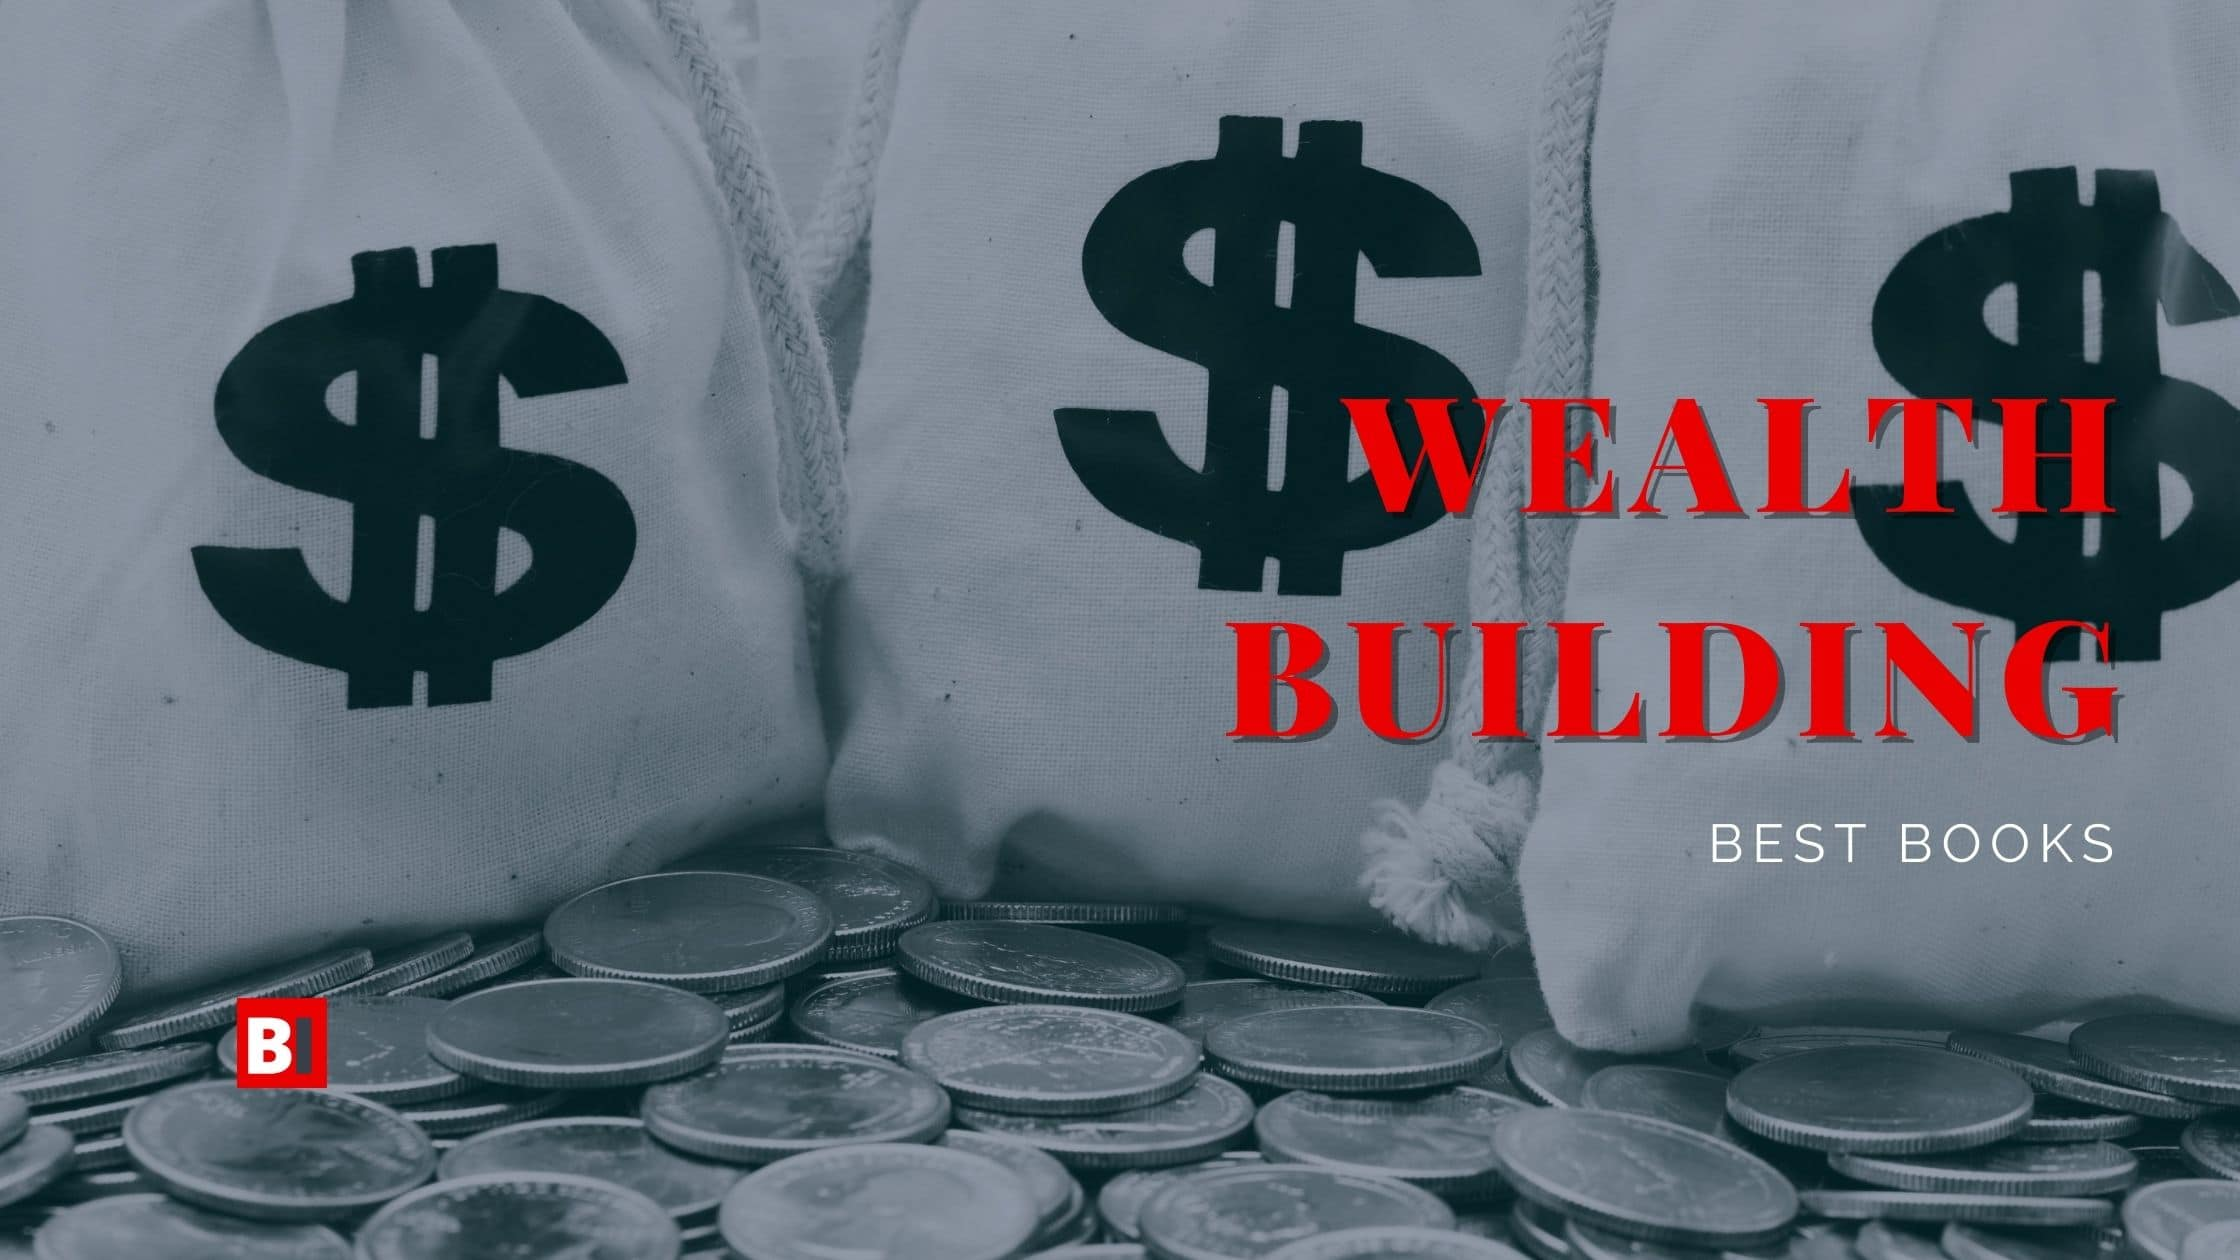 Best Books on Wealth Building